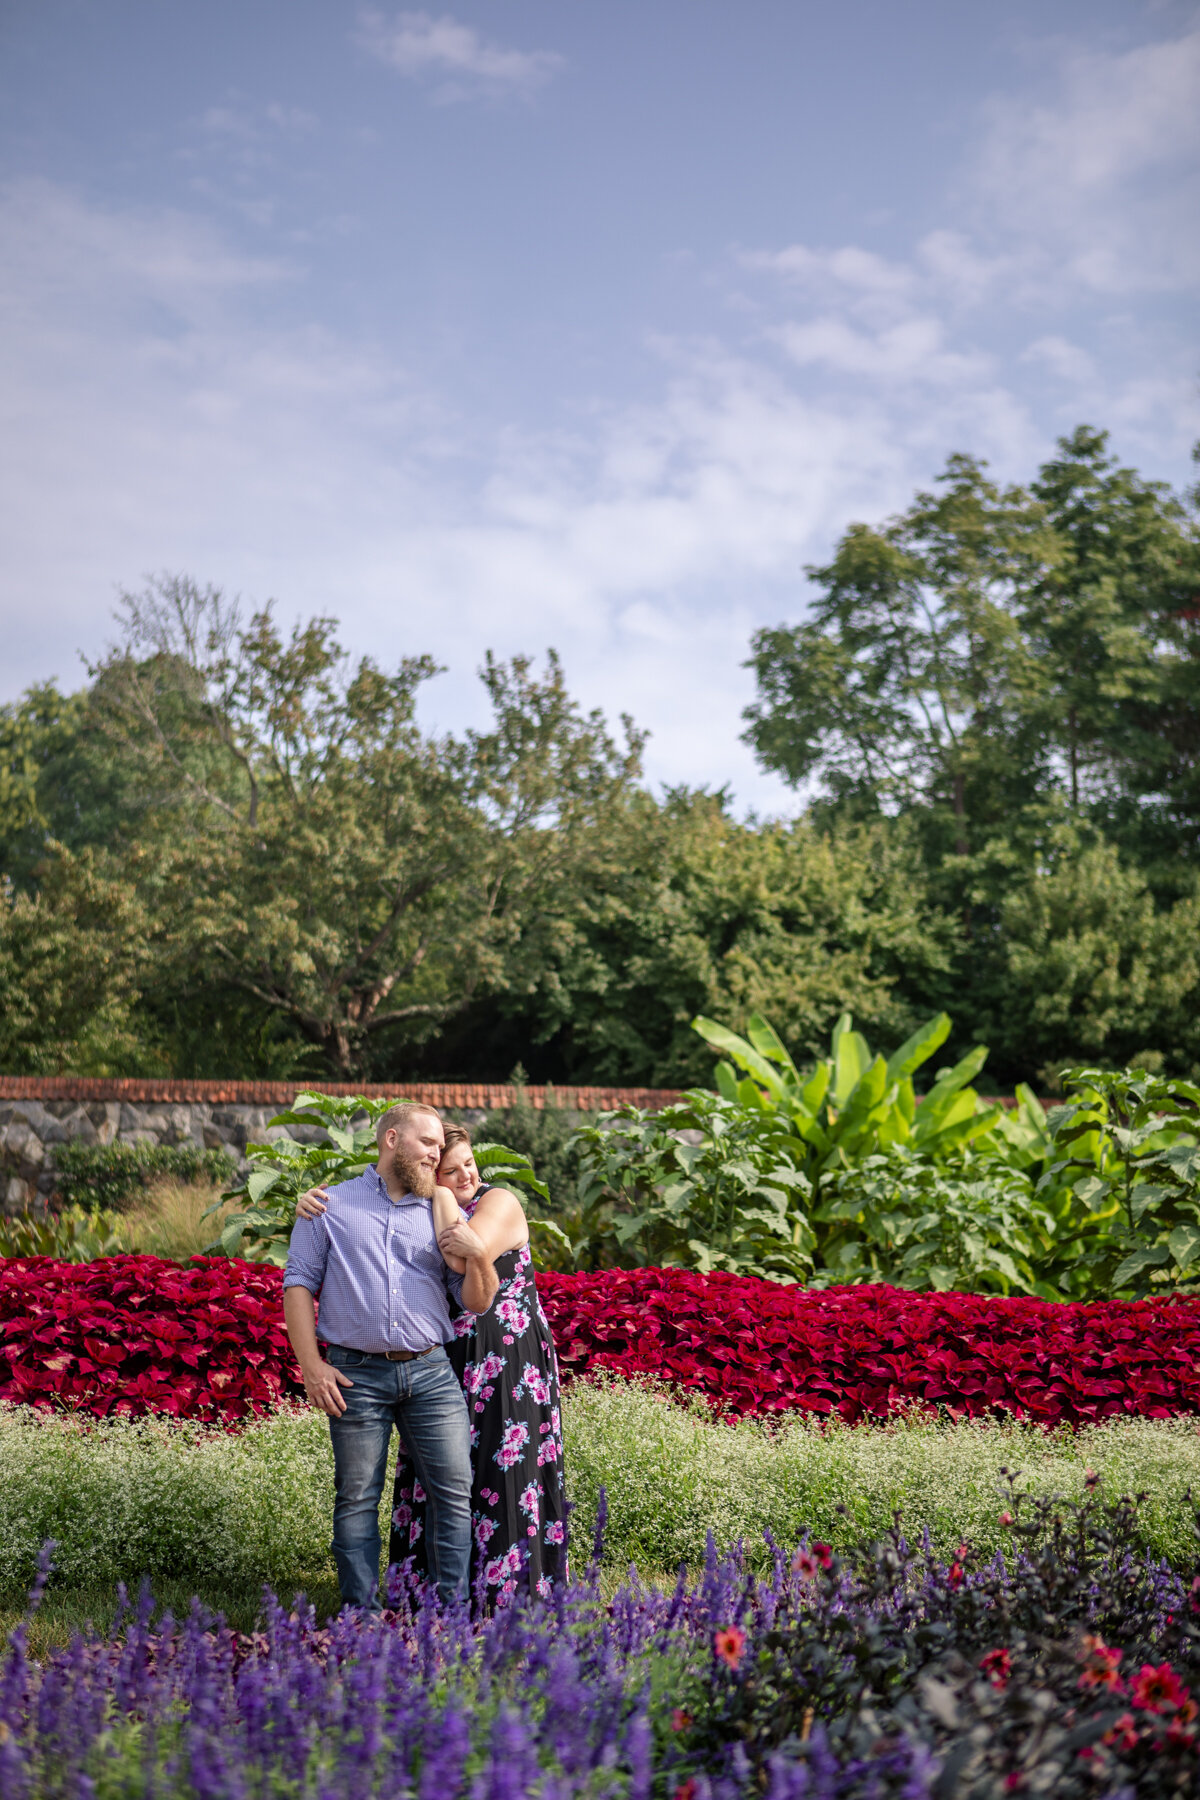 Jessica and Derek Engagement photos 2019_photos by Studio Misha_BLOG-84.jpg